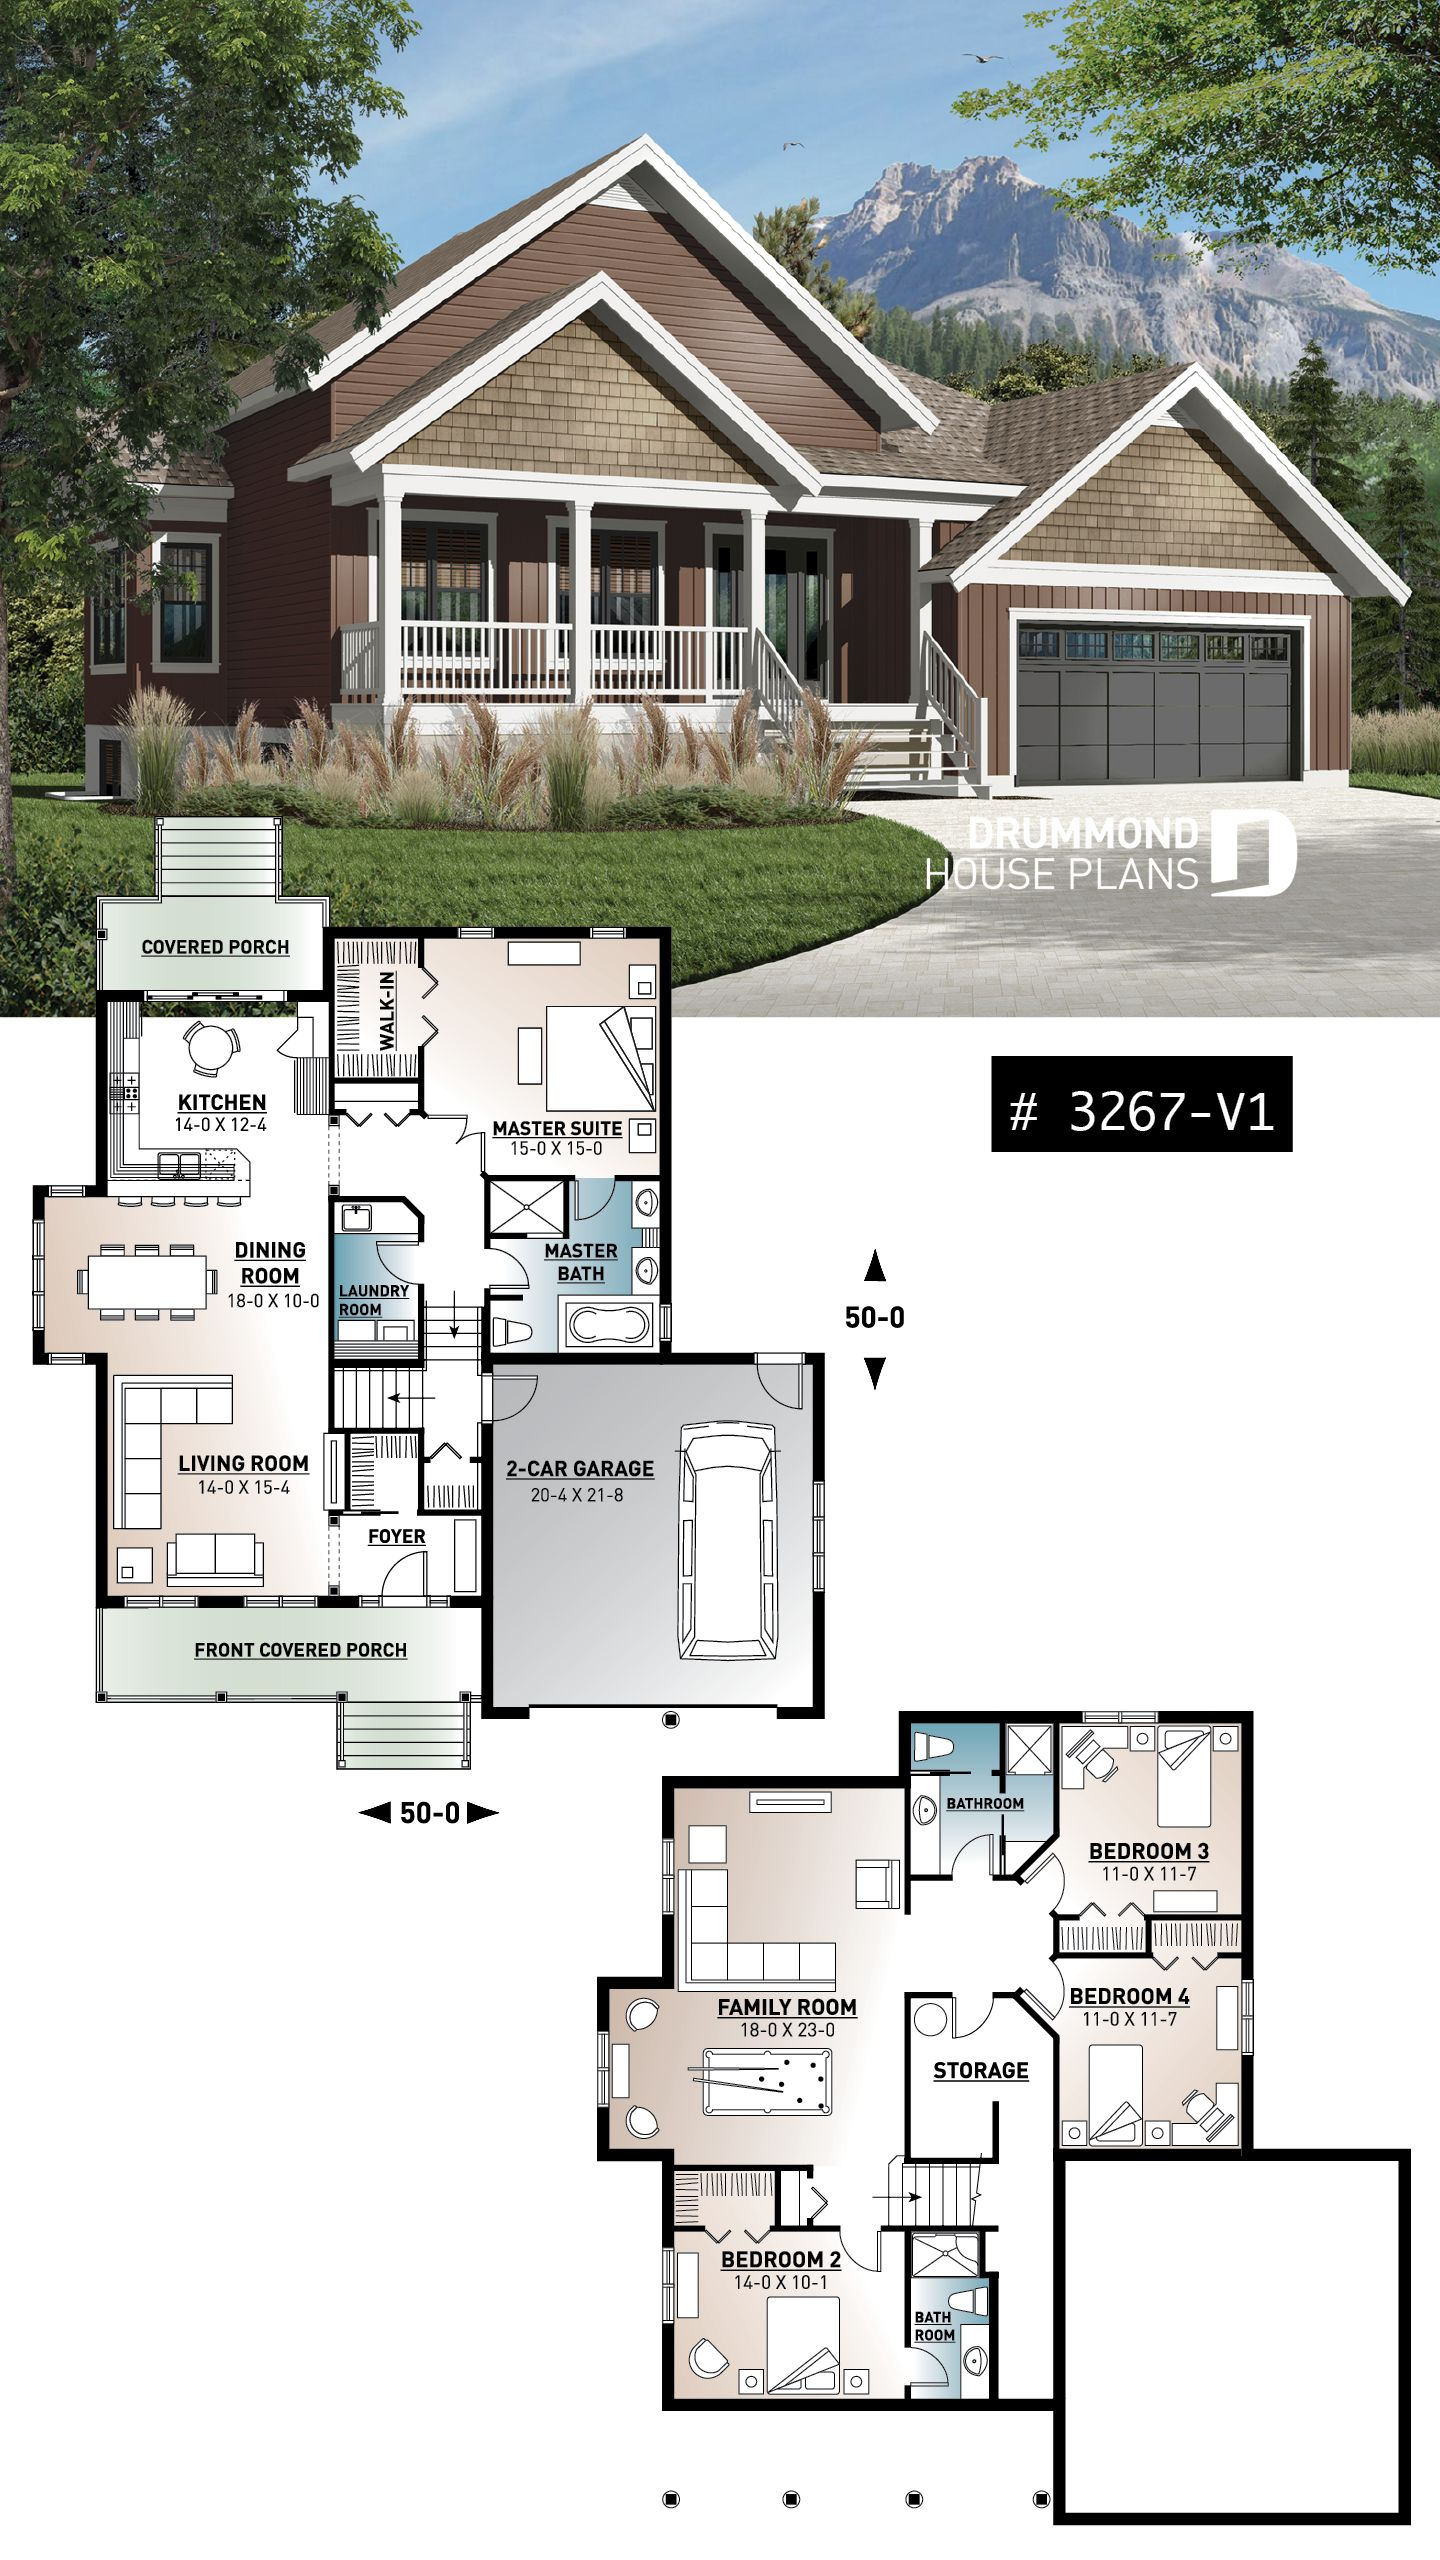 Discover The Plan 3267 V1 Jackson 2 Which Will Please You For Its 1 2 3 4 Bedrooms And For Its Mountain Styles Bungalow House Design House Blueprints Bungalow House Plans